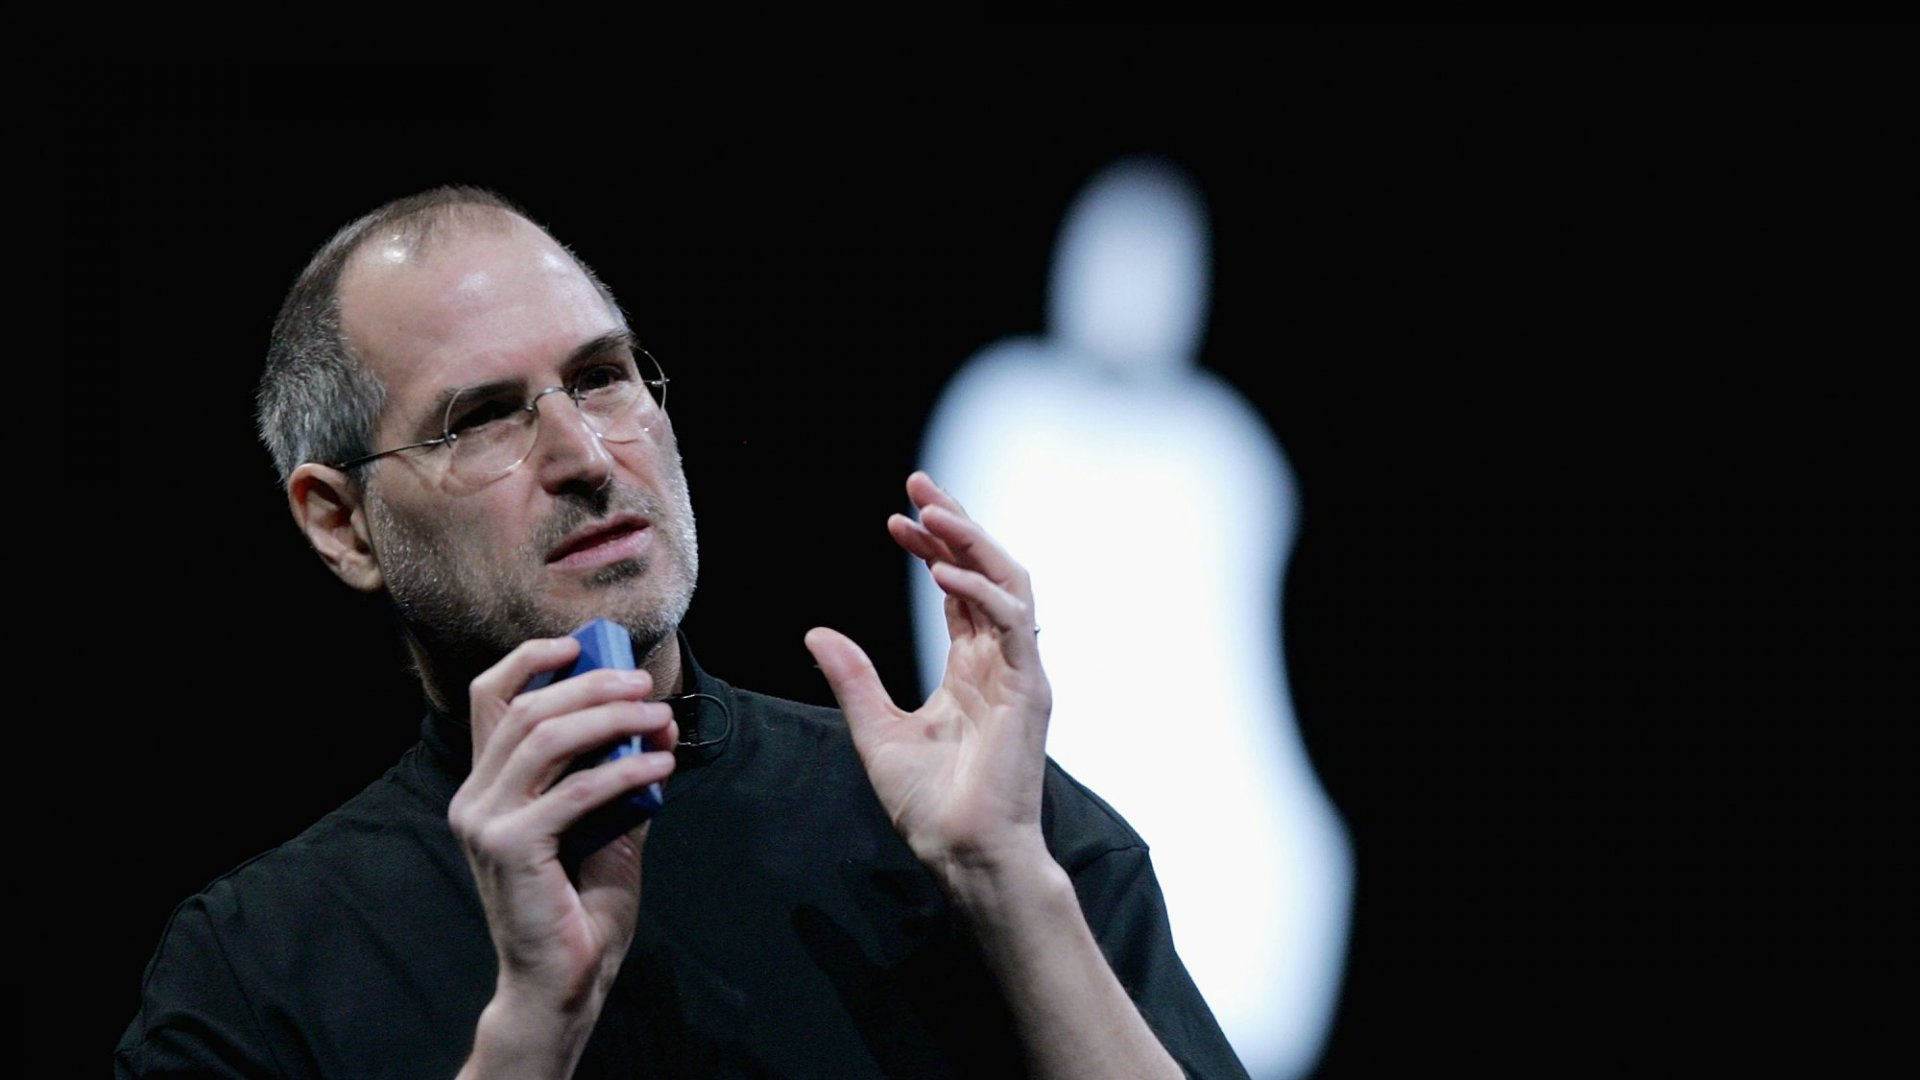 The Simple Trick Great Thinkers From Charles Darwin to Steve Jobs Used to Be More Creative